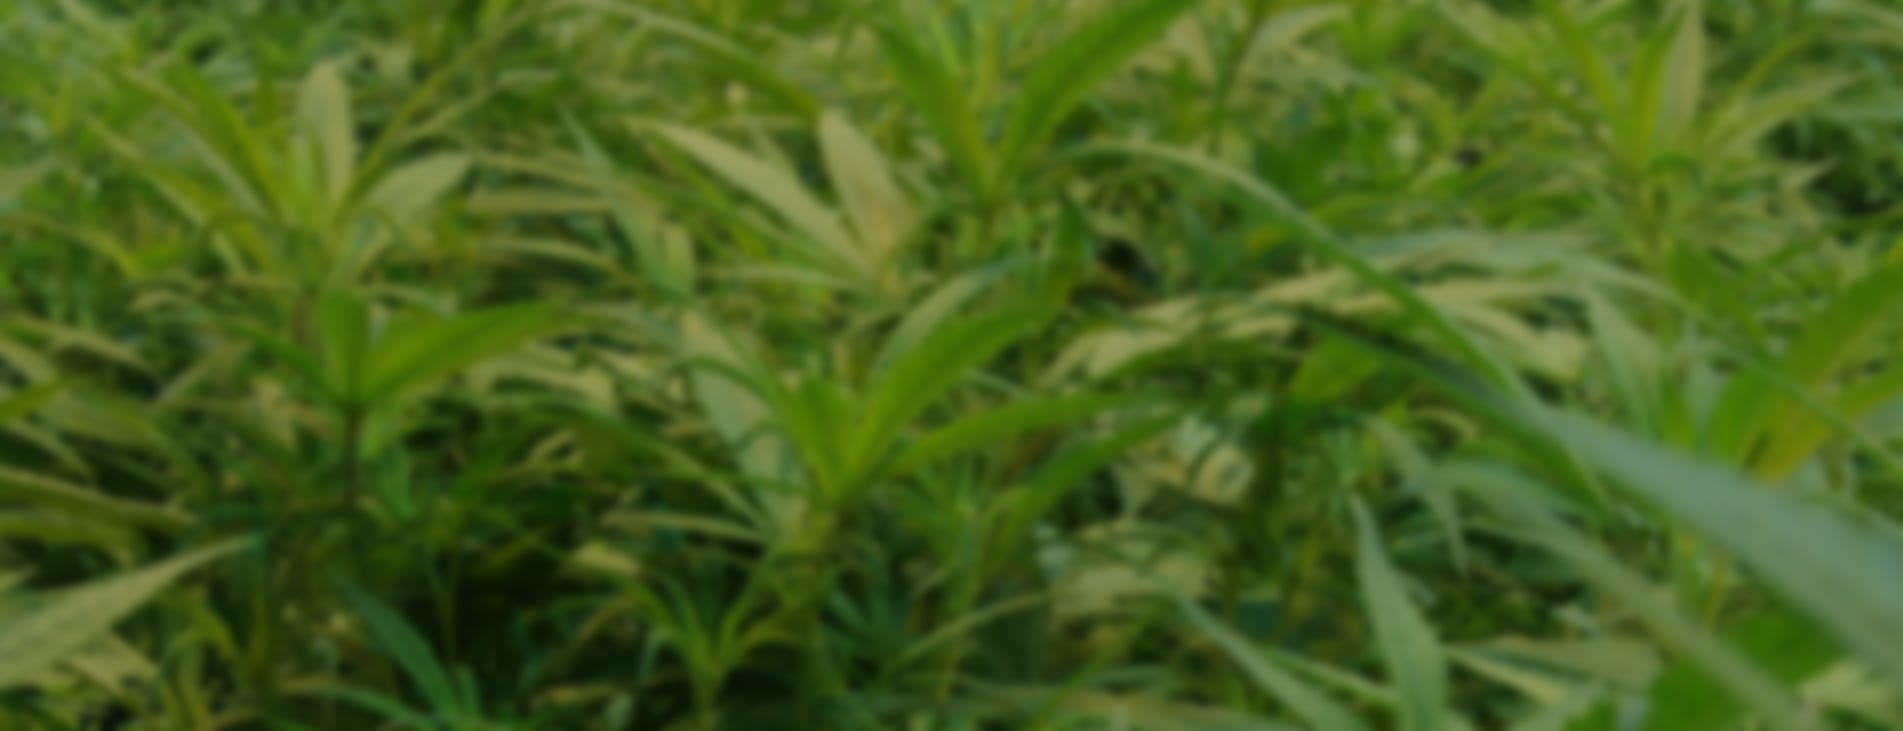 Hemp plants in a field blurred and darkened